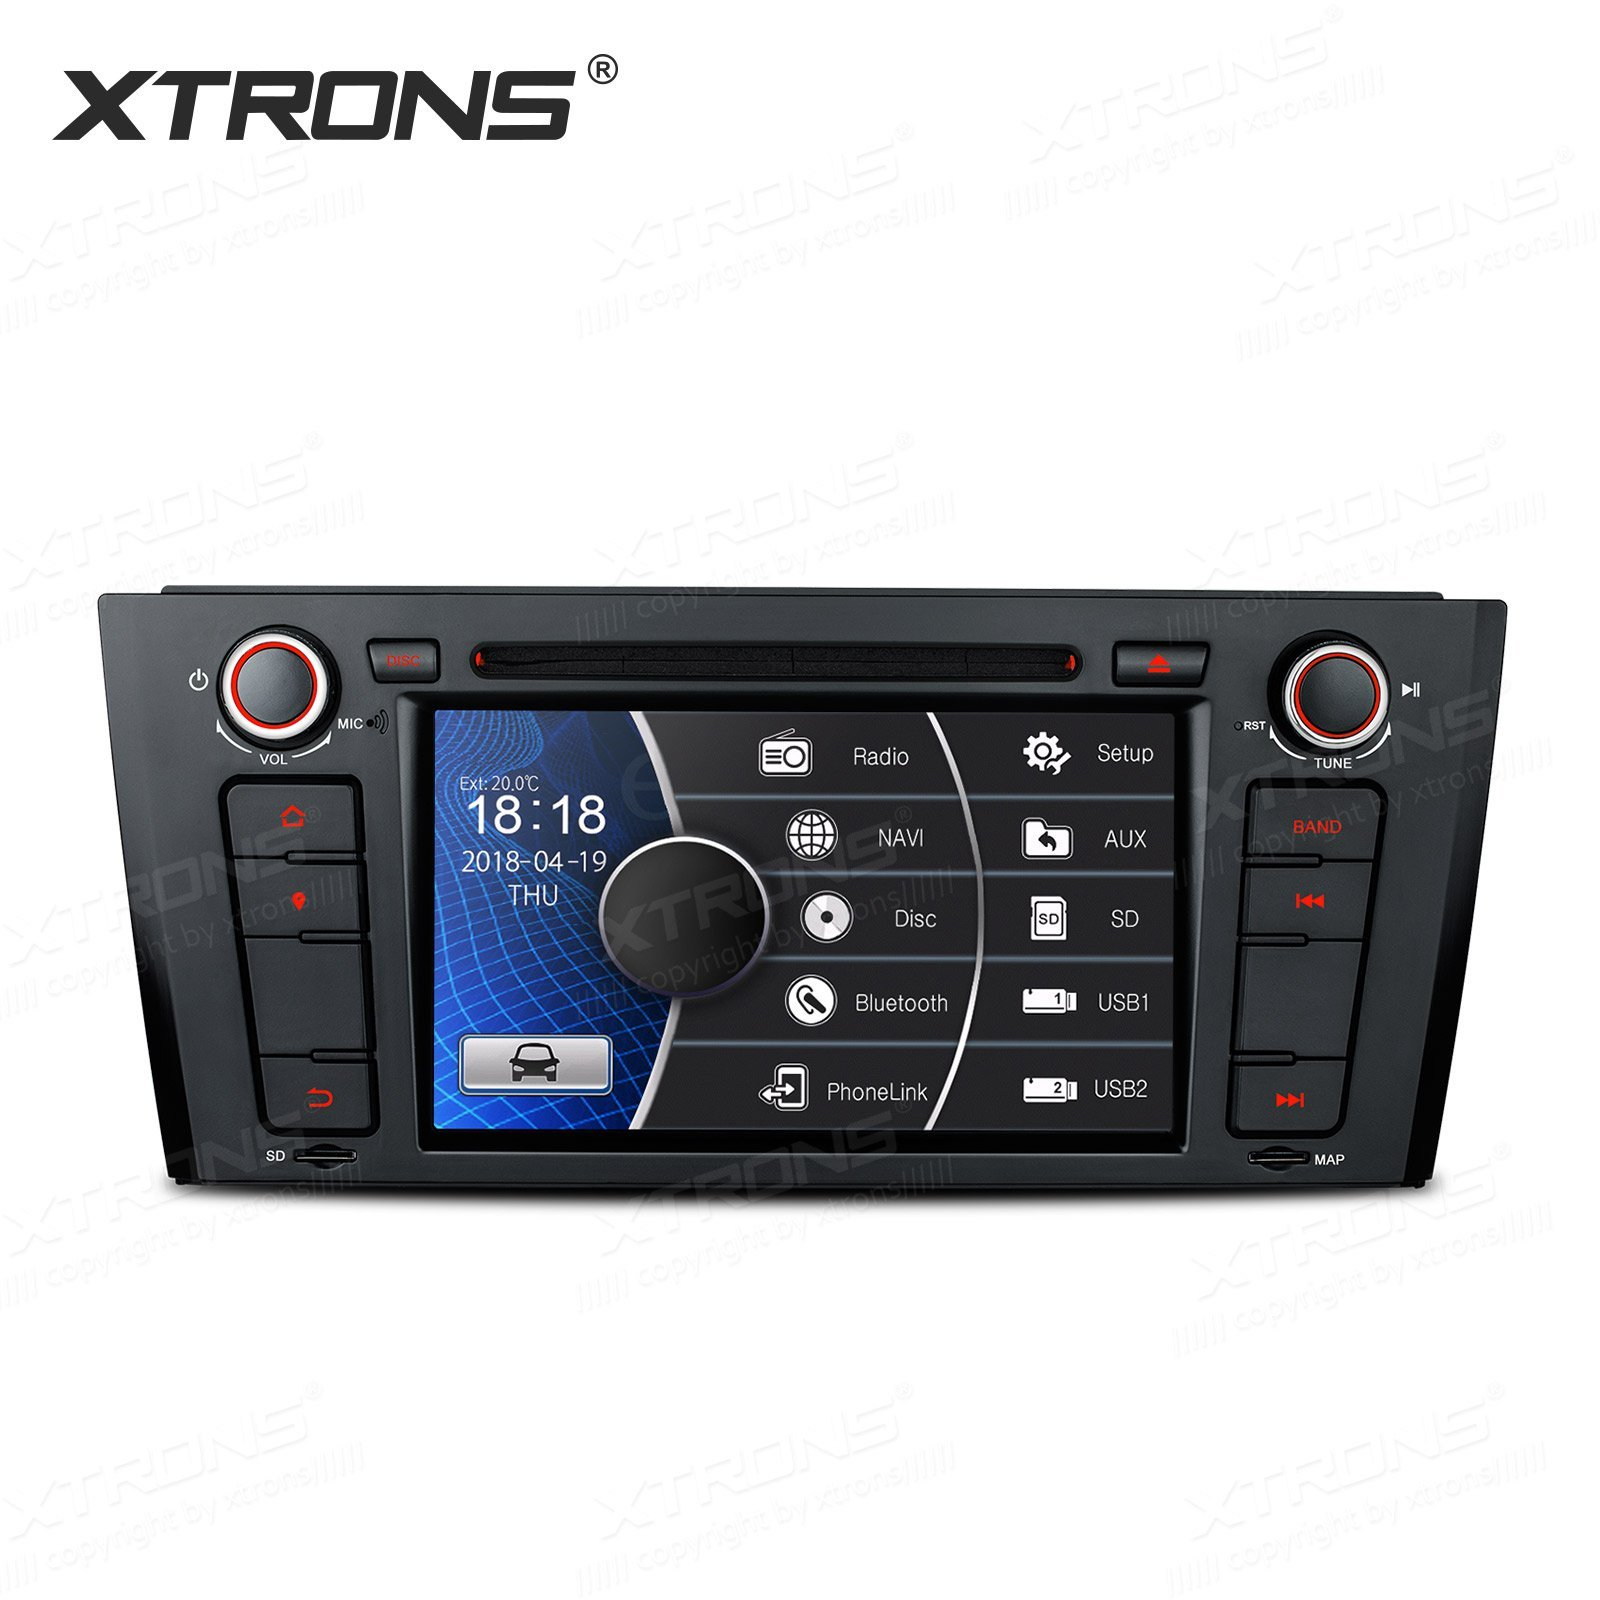 XTRONS 7 Inch HD Digital Touch Screen Car Stereo Radio In-Dash DVD Player with GPS CANbus for BMW 1 Series E81 E82 E88 2007-2014 Map Card Included by XTRONS